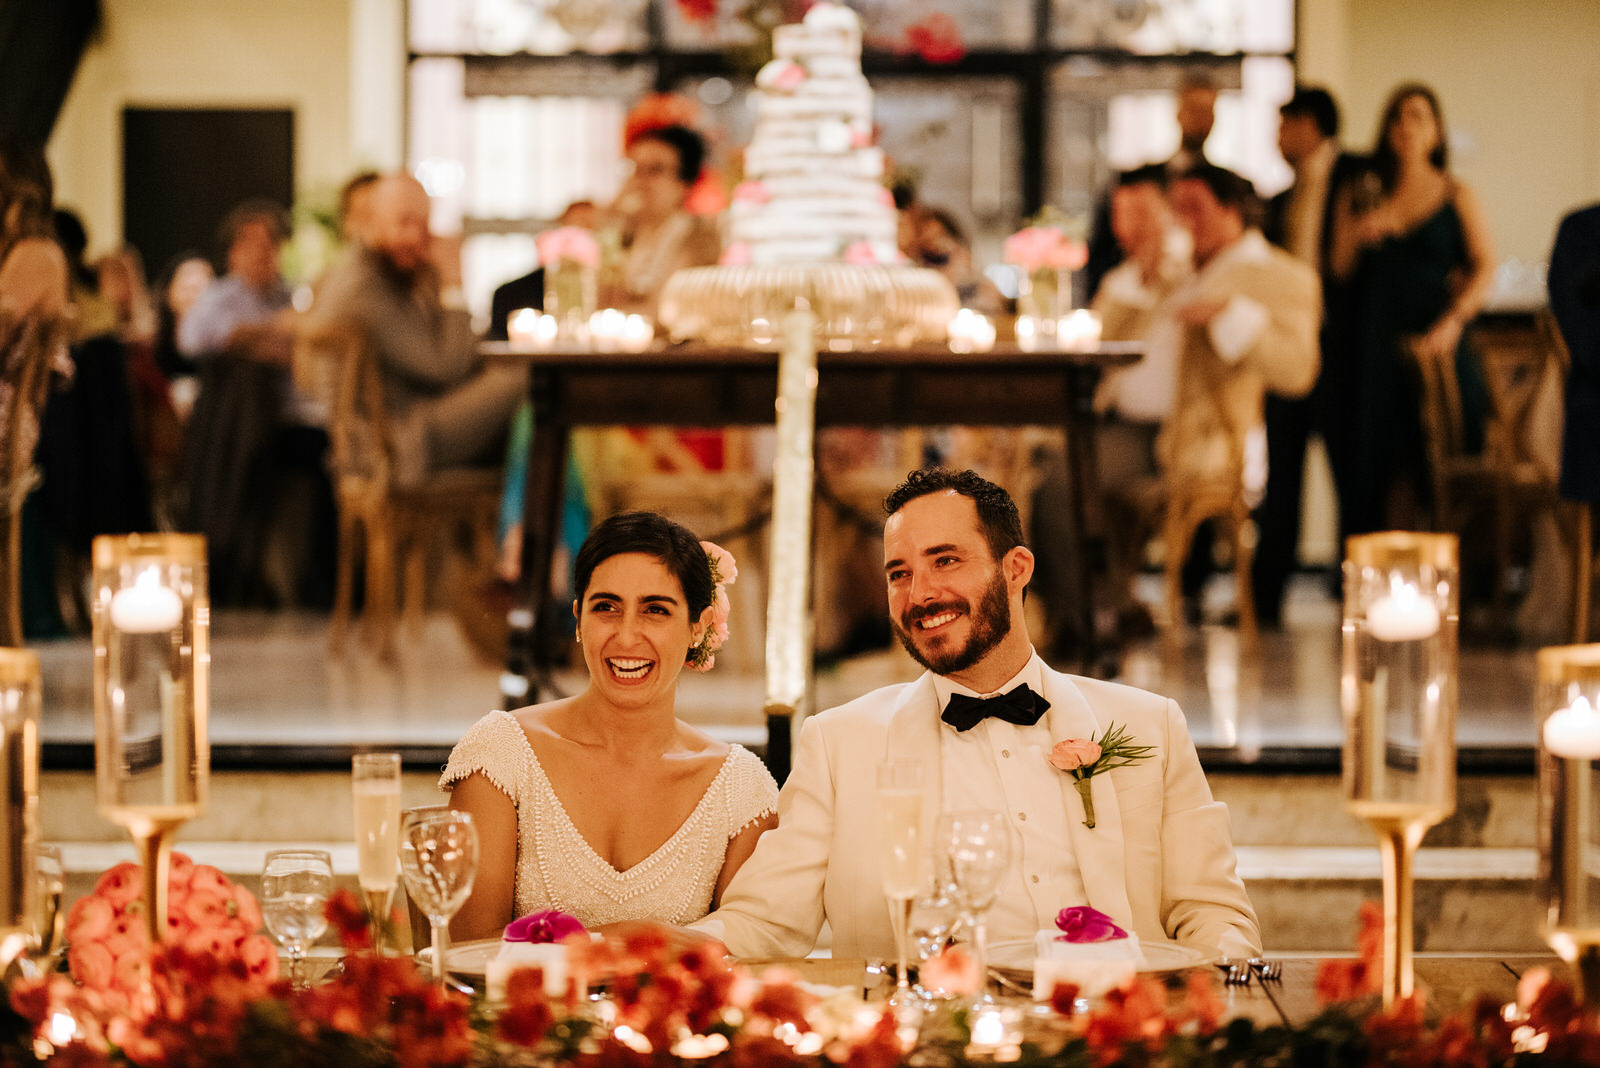 Bride and groom are sitting at their wedding table and smile during the speeches